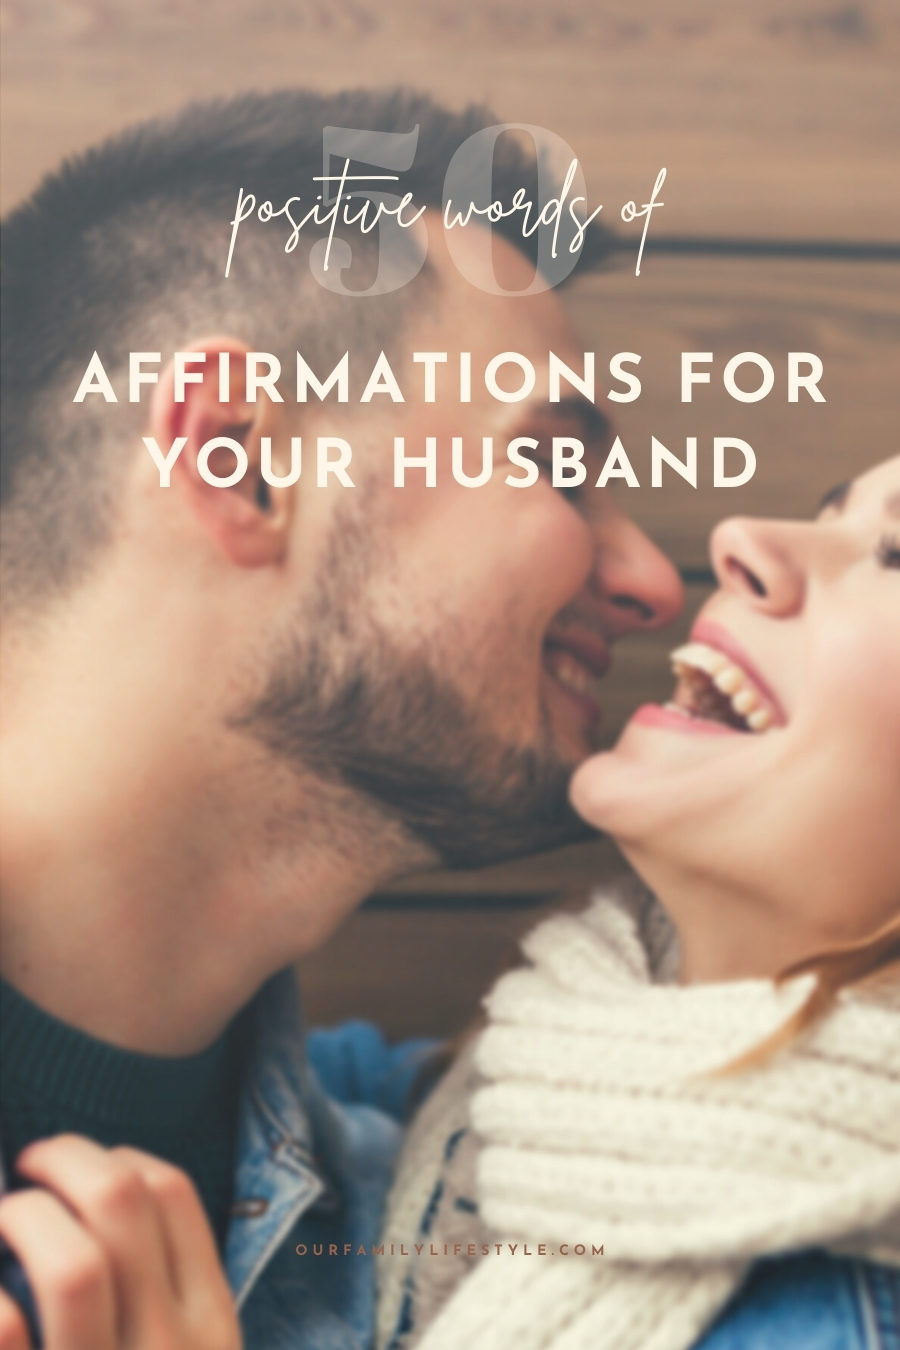 50 Positive Words of Affirmations for Your Husband